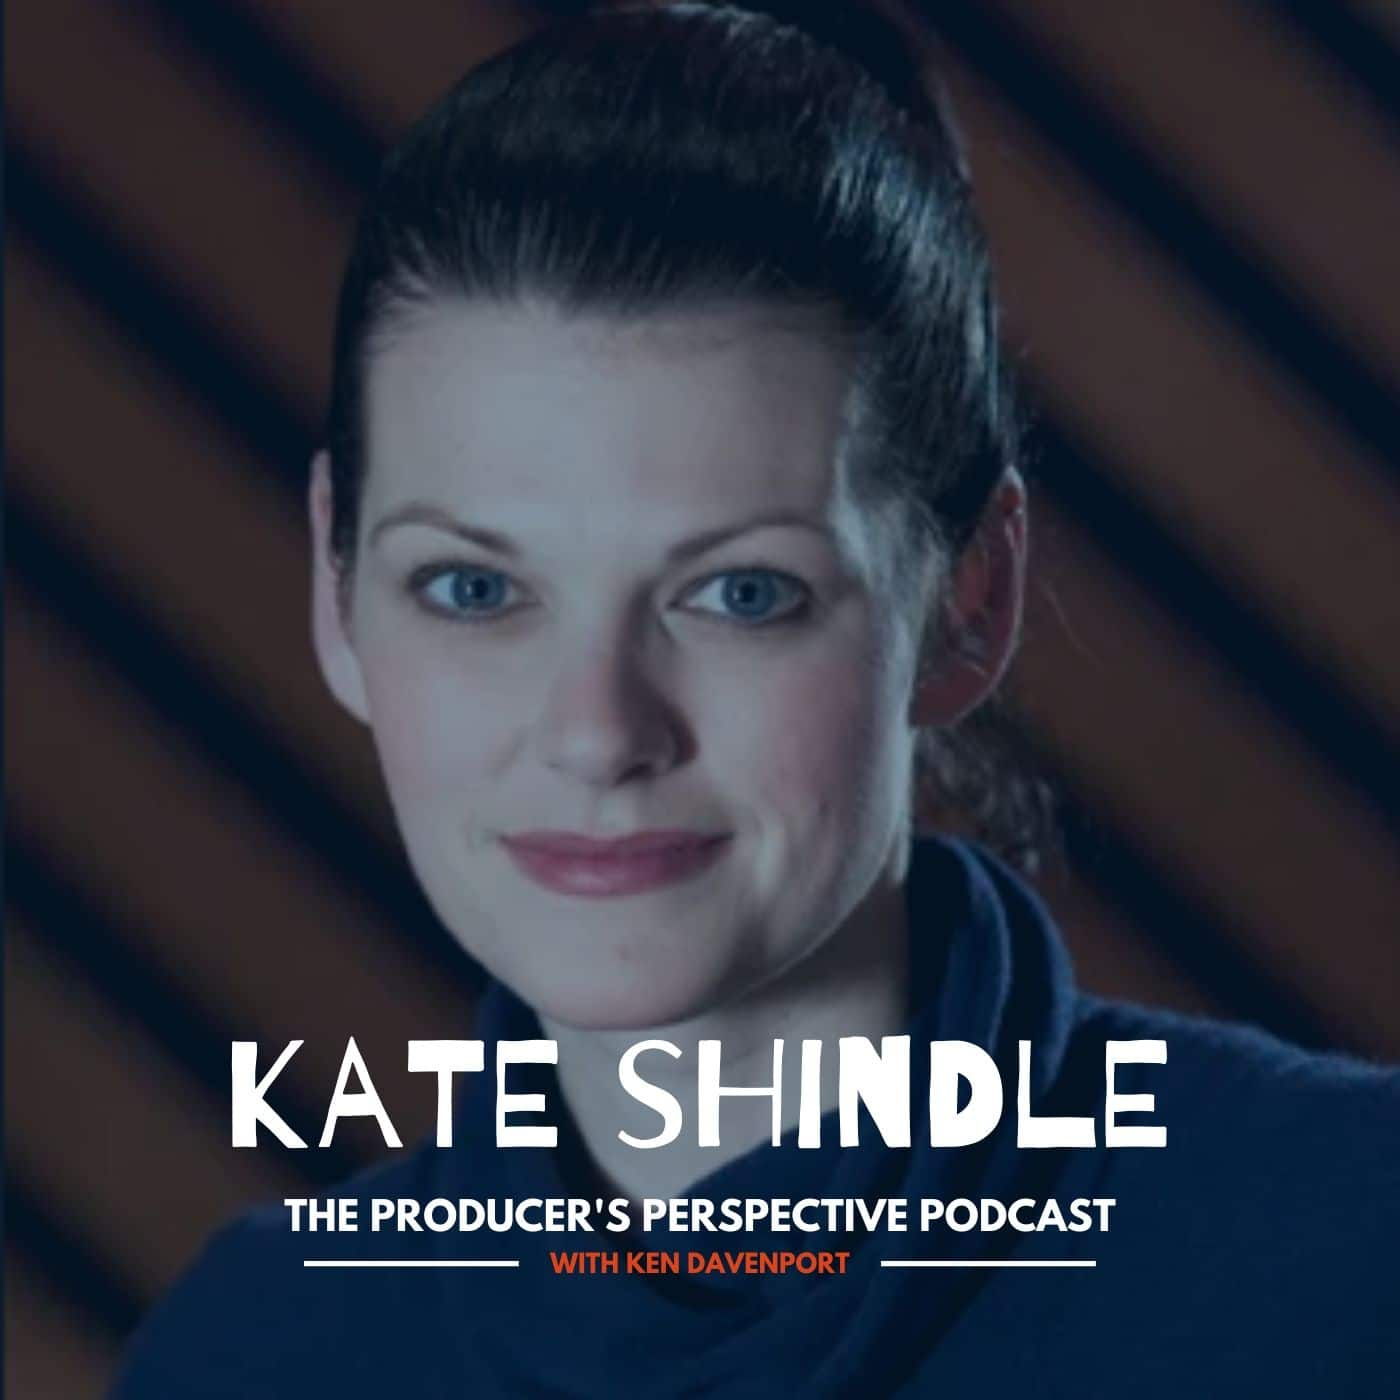 Ken Davenport's The Producer's Perspective Podcast Episode 61 - Kate Shindle